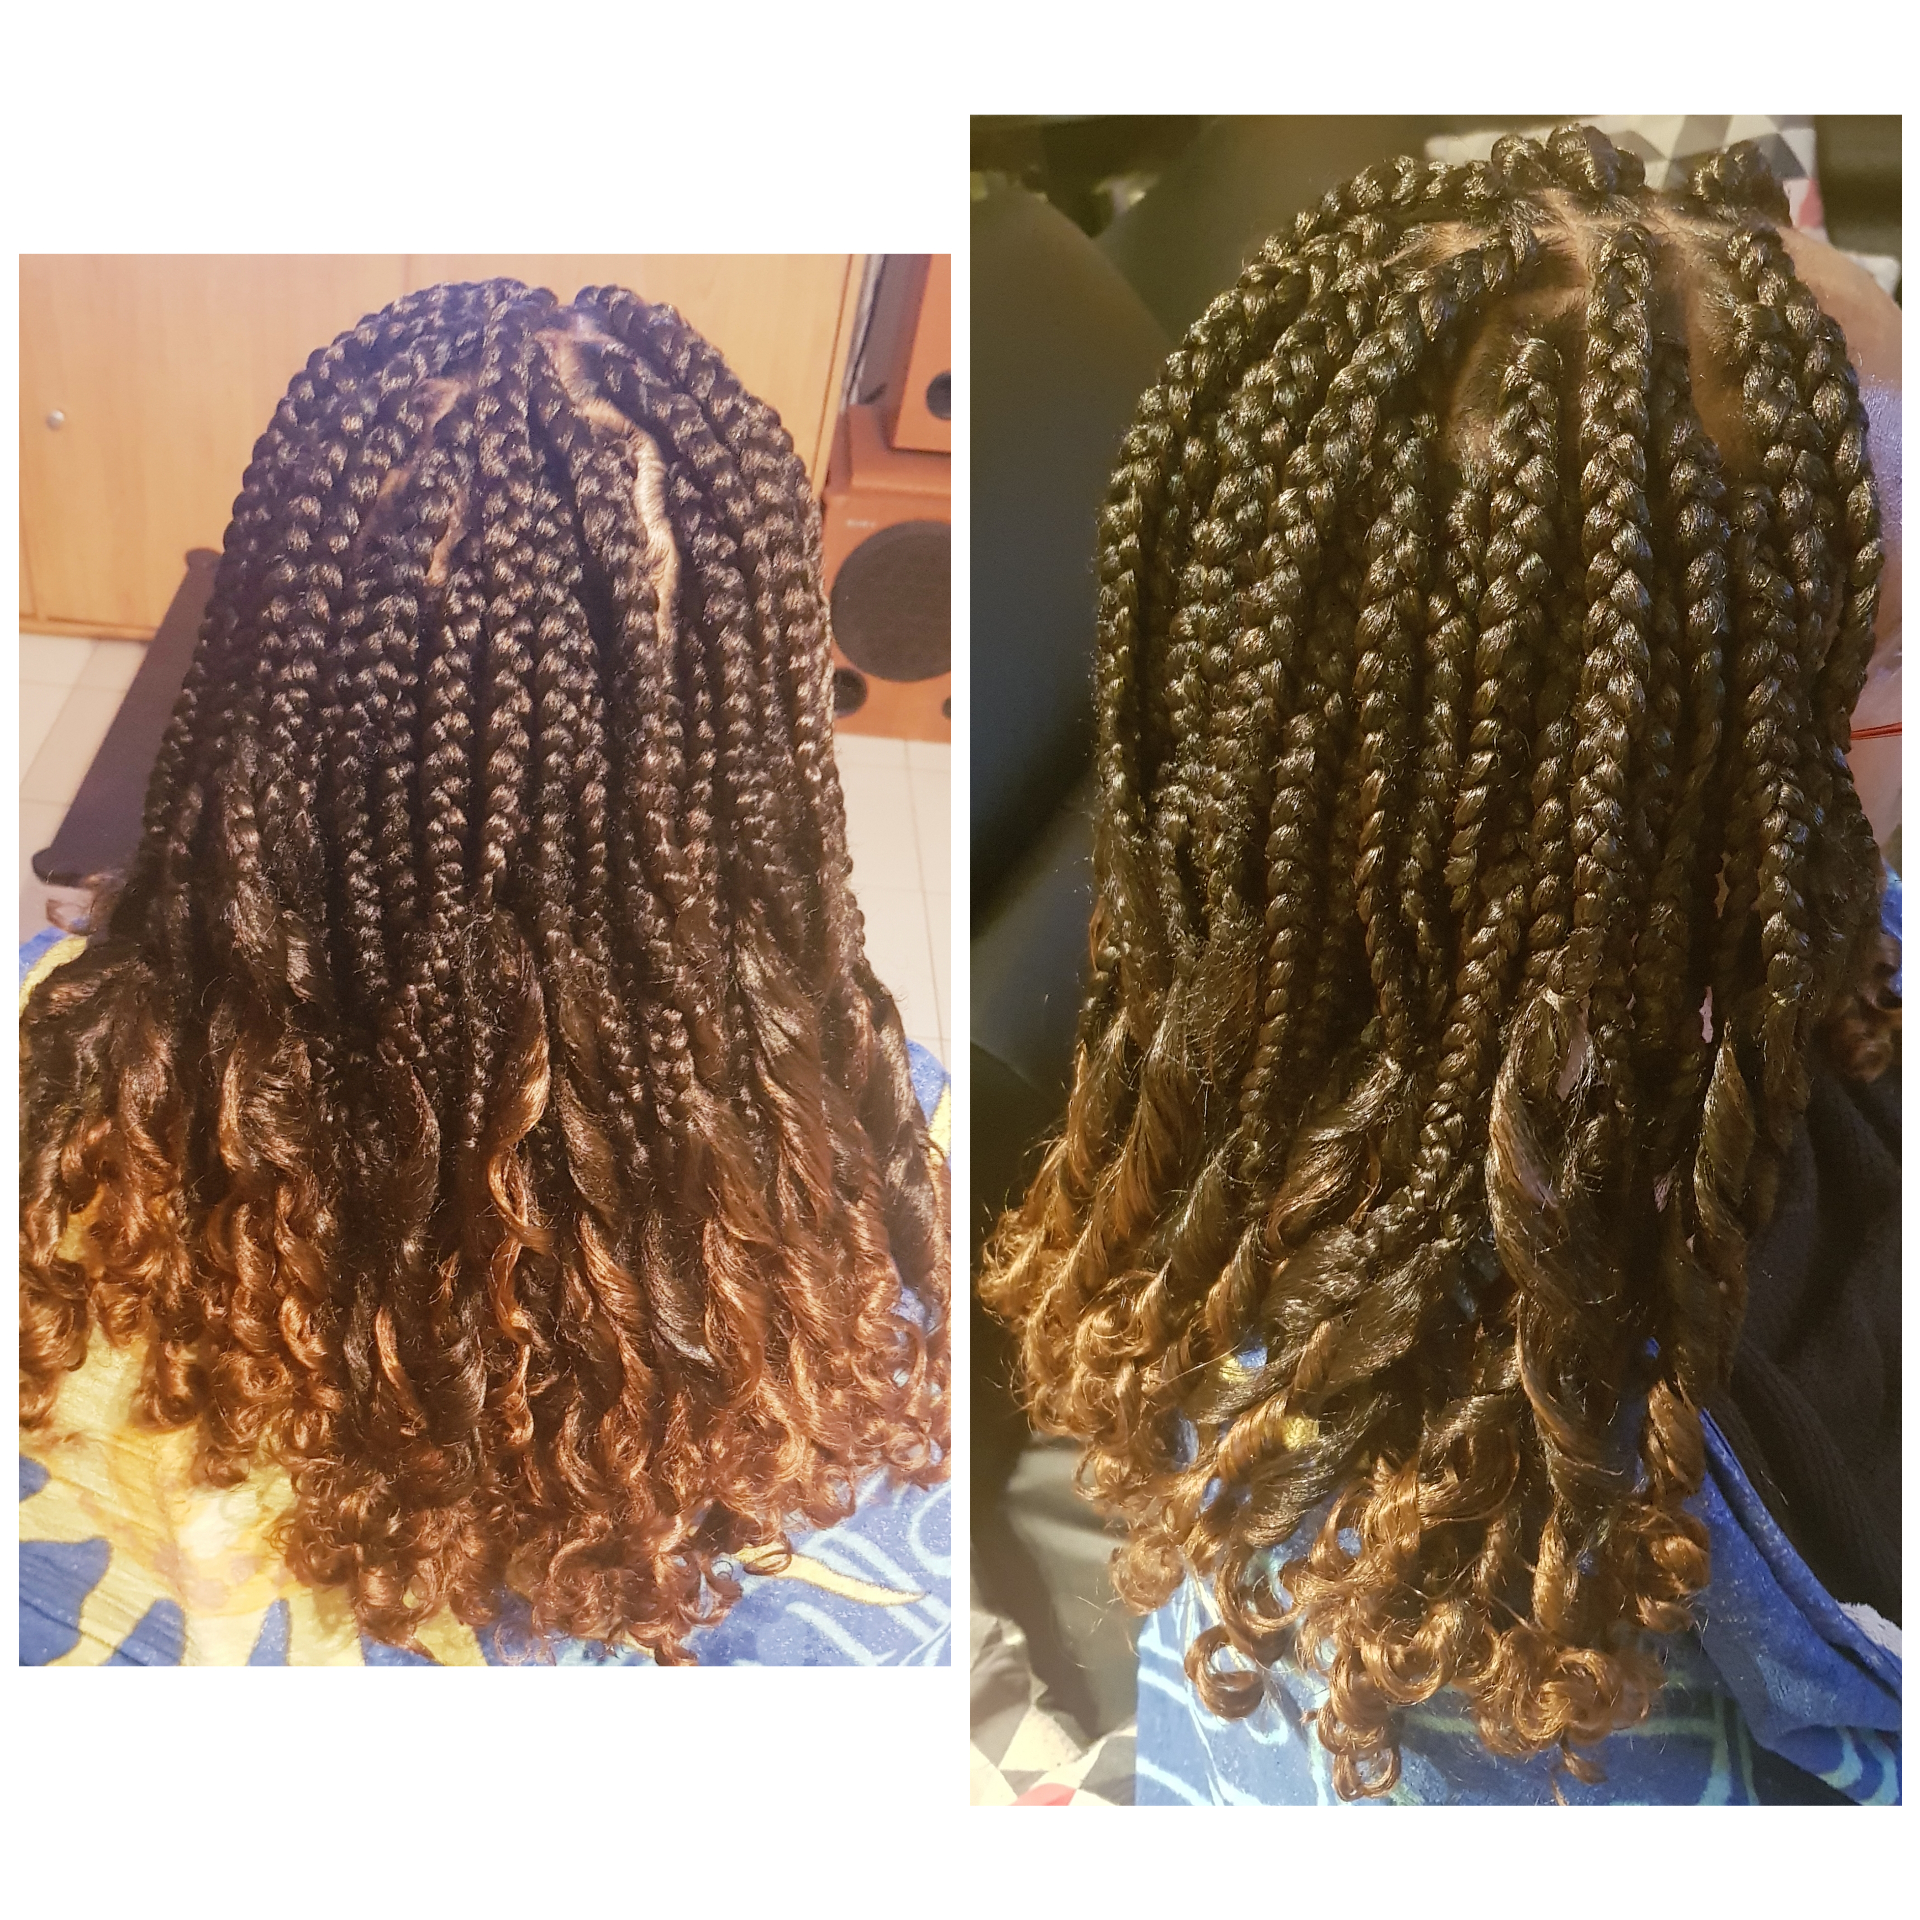 salon de coiffure afro tresse tresses box braids crochet braids vanilles tissages paris 75 77 78 91 92 93 94 95 PQRQAHWT